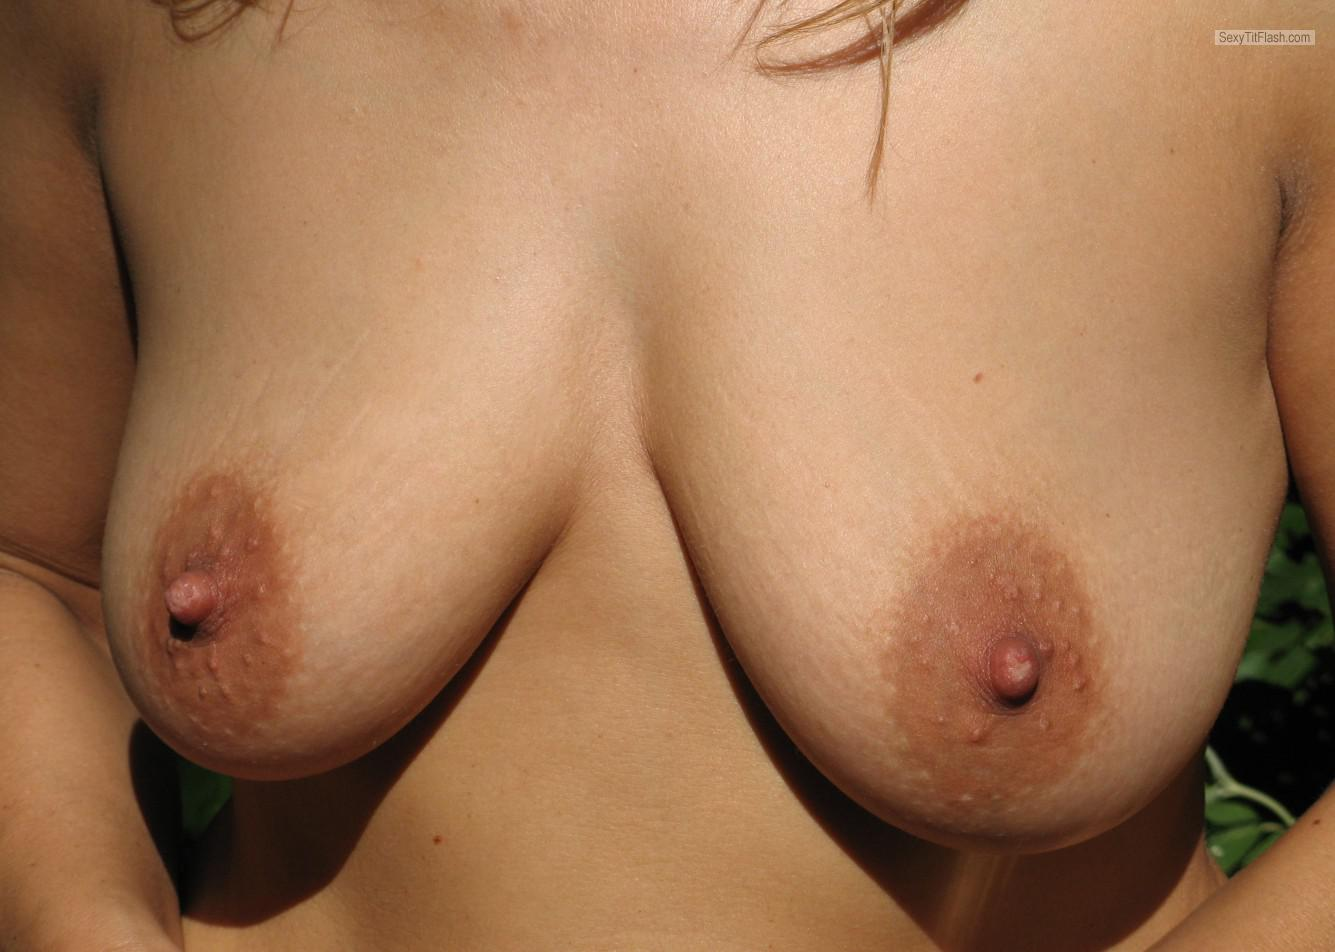 Tit Flash: Wife's Medium Tits With Very Strong Tanlines - Nina from Croatia (Hrvatska)